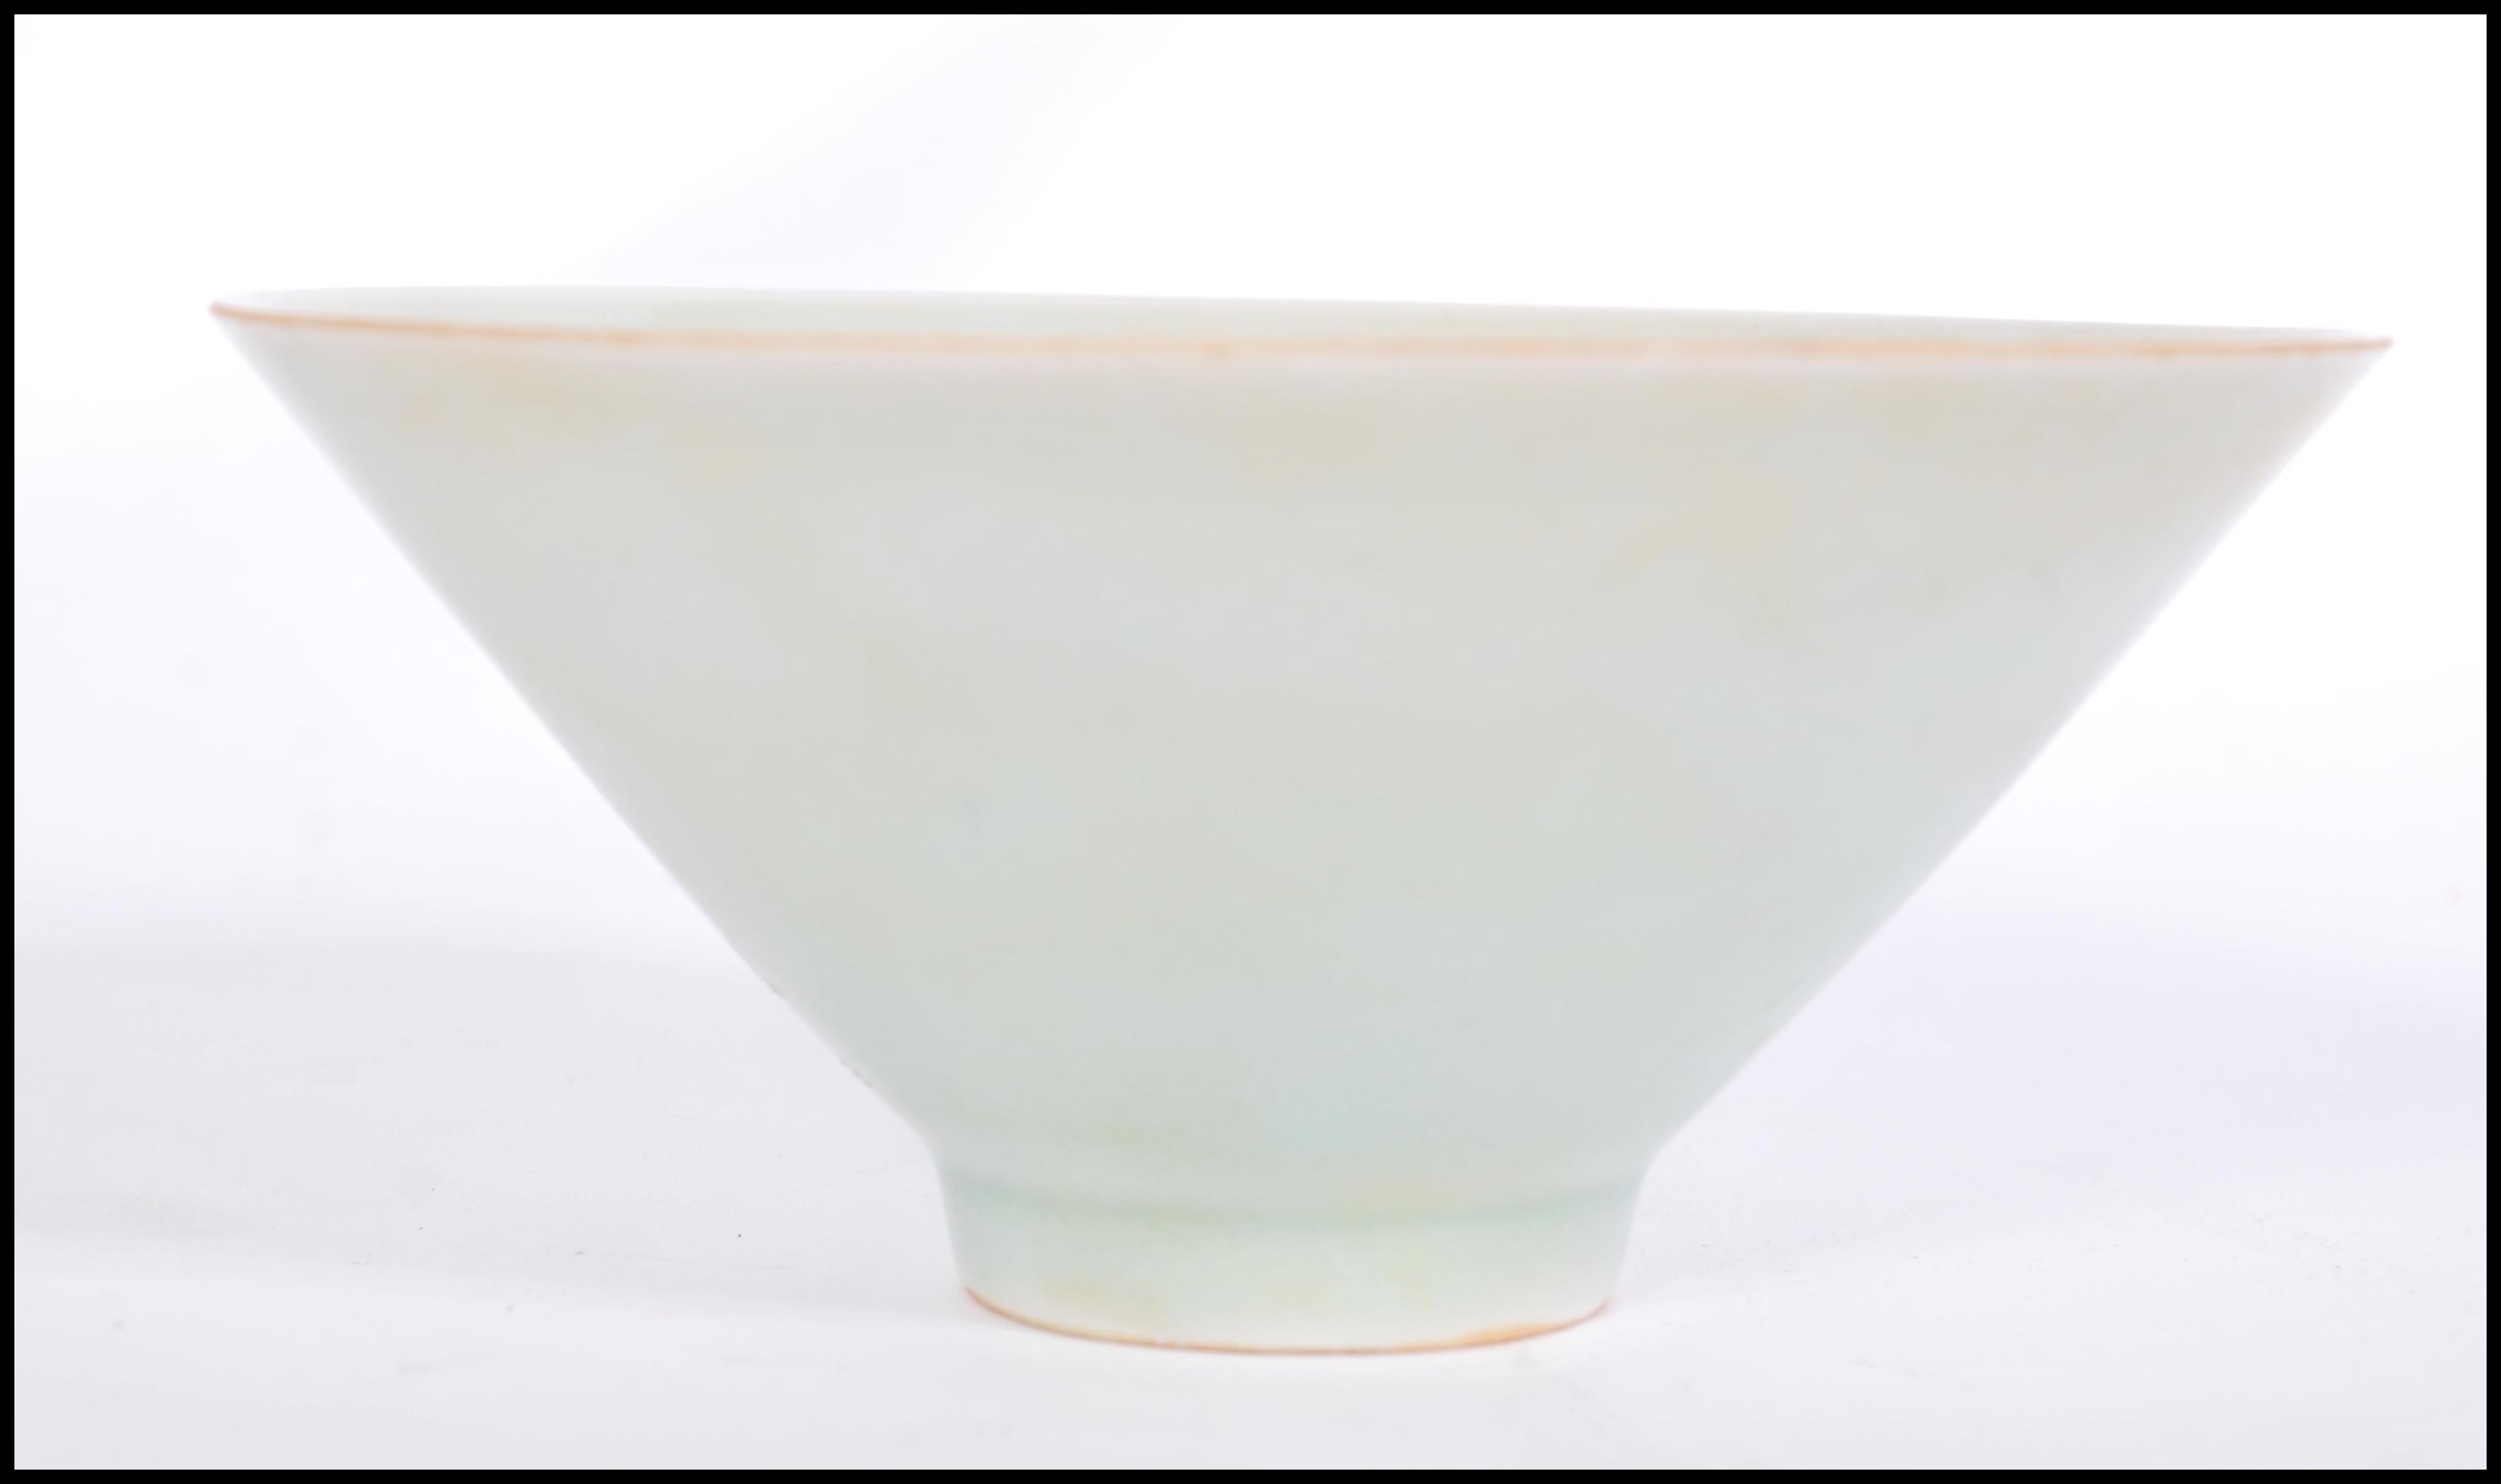 Lot 48 - A believed antique Chinese Celadon glaze bowl of conical form raised on small circular foot.